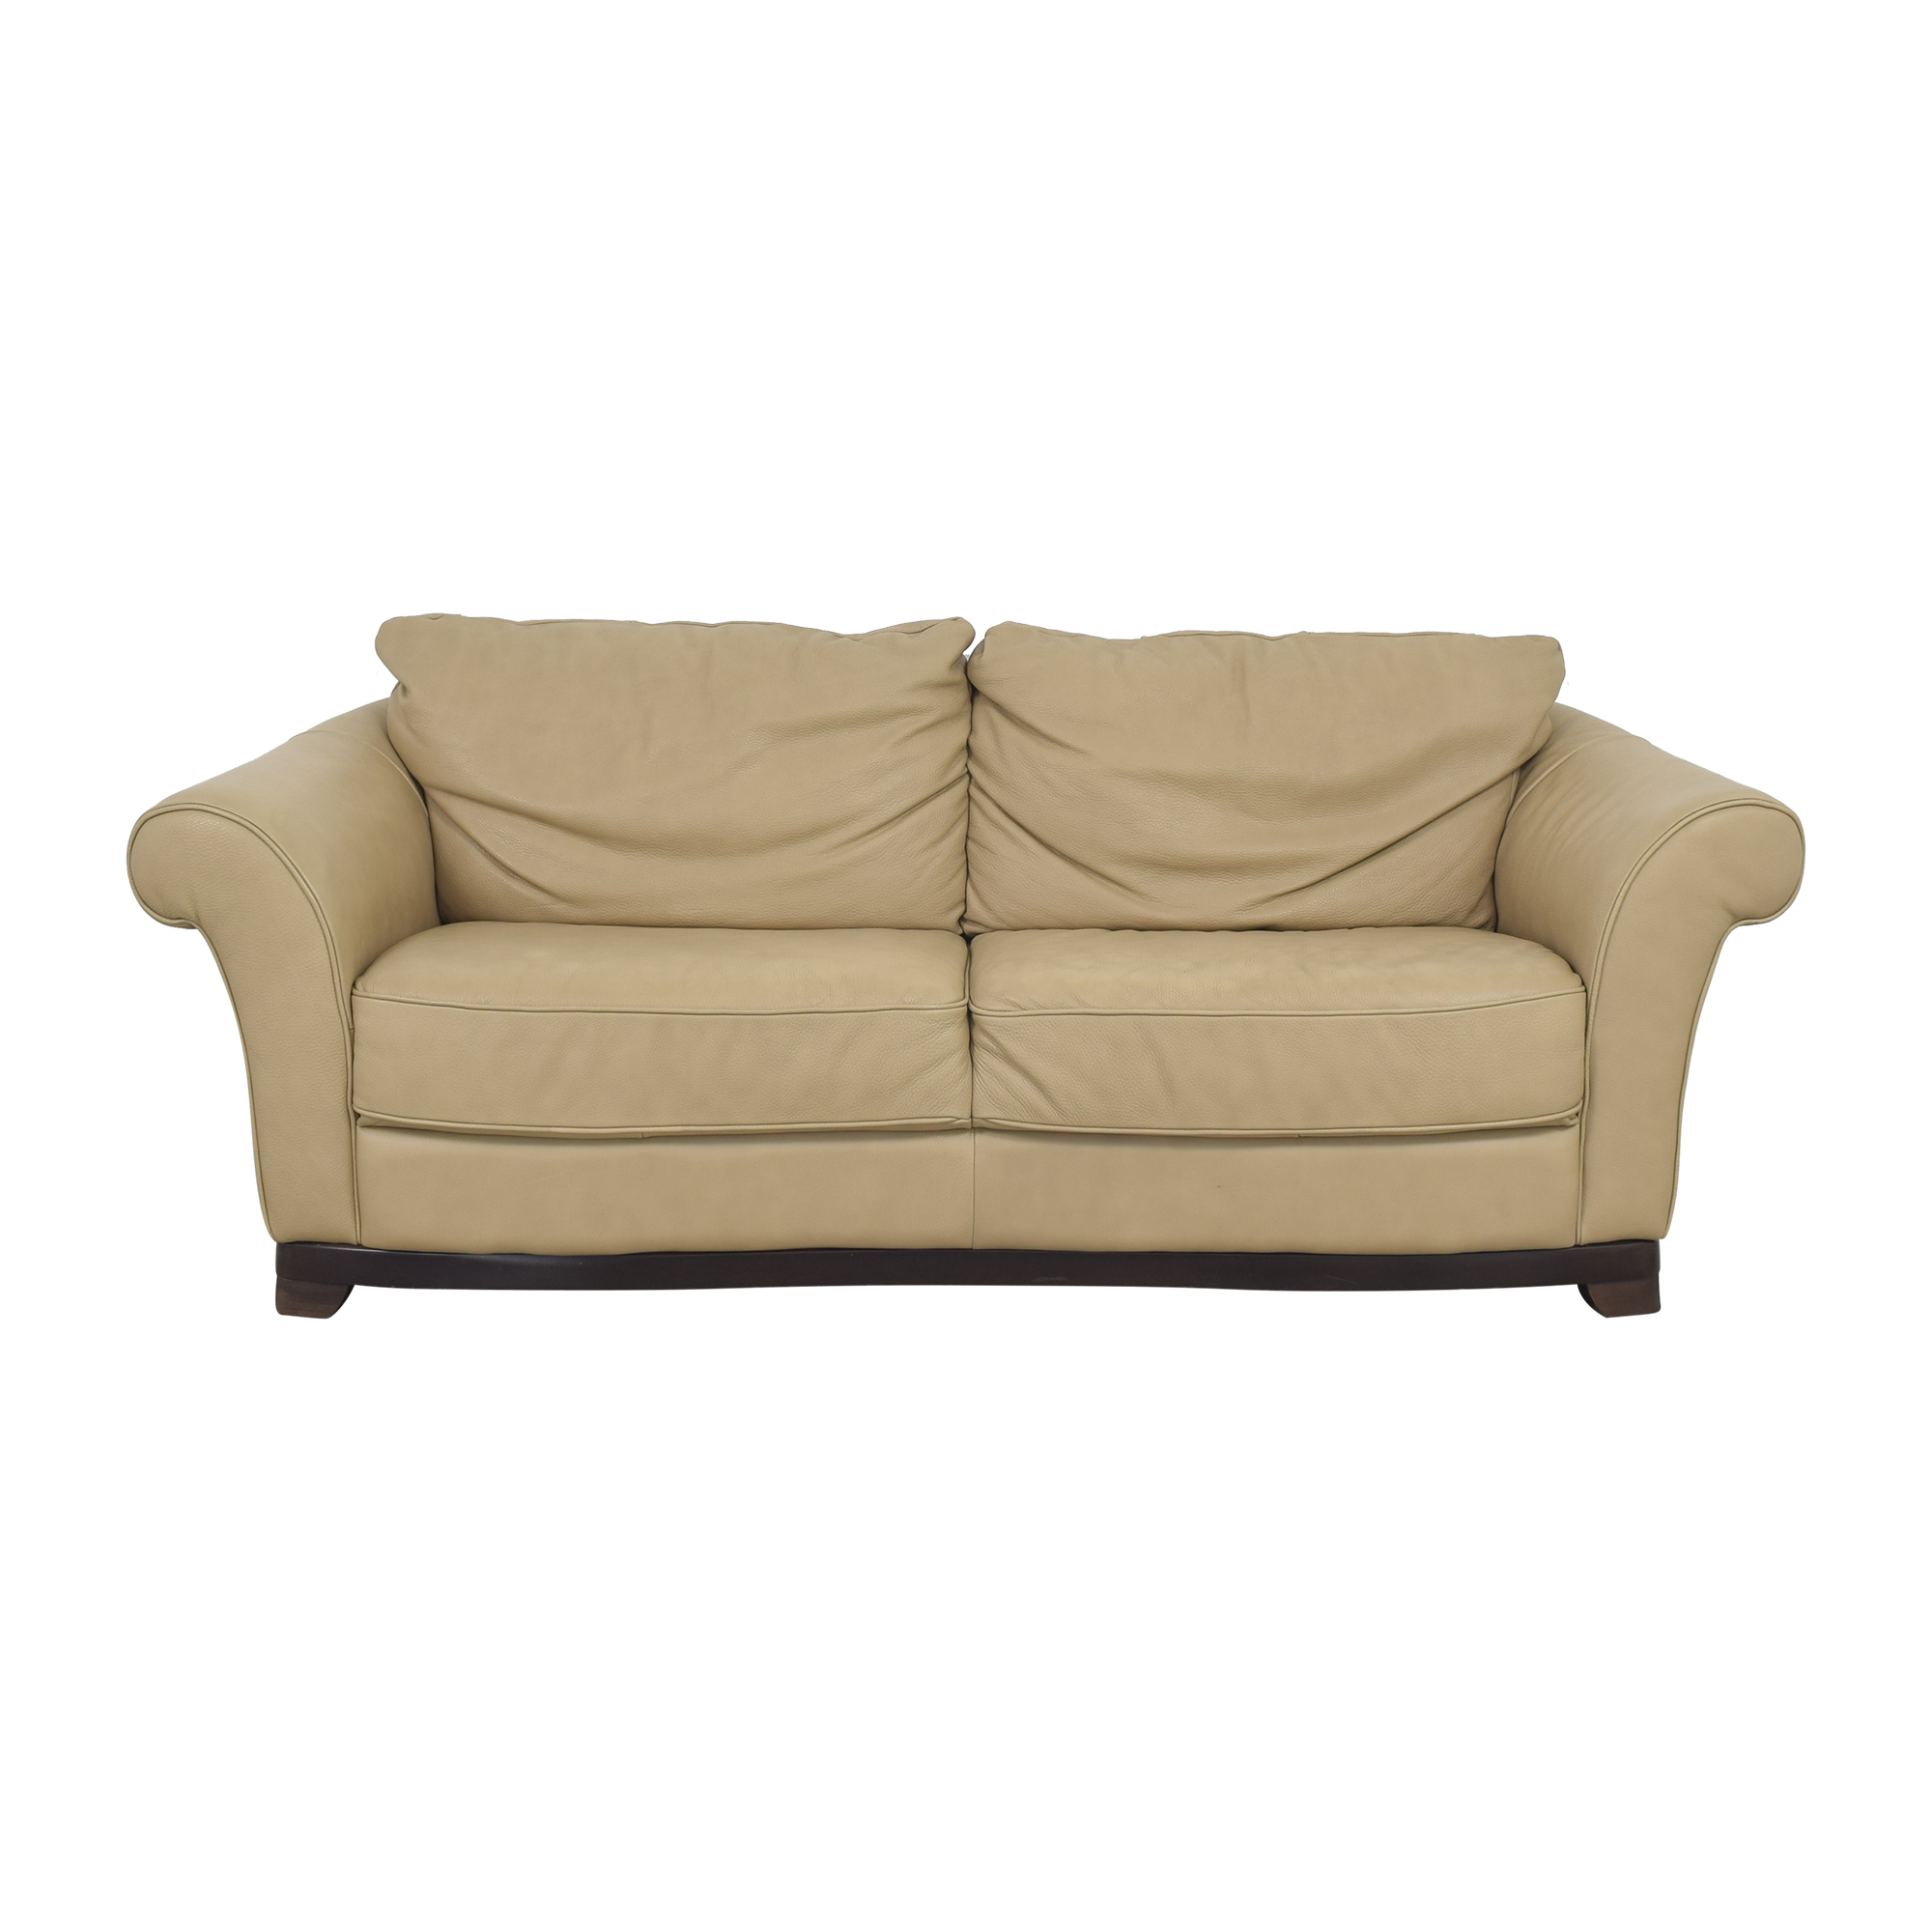 Natuzzi Natuzzi Two Cushion Sofa  used